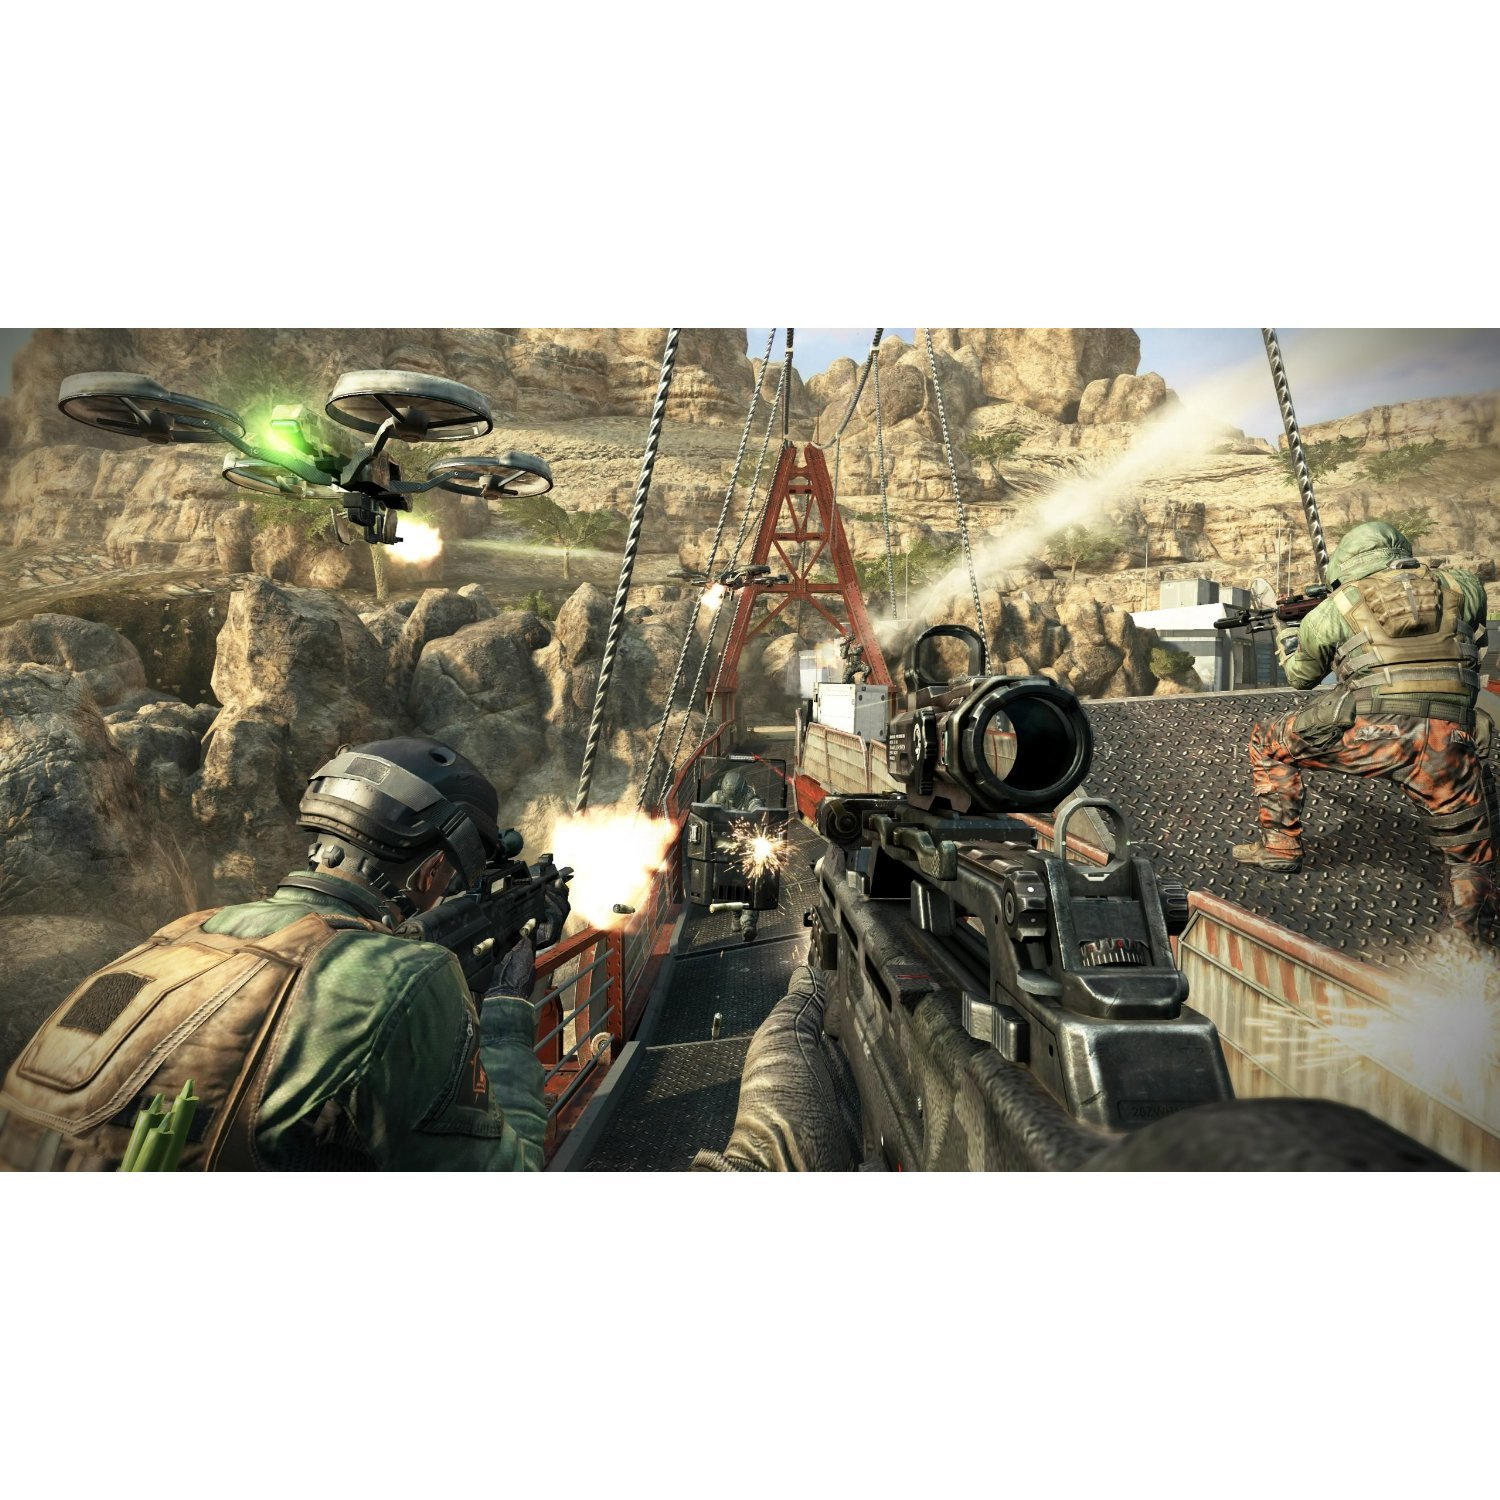 Call of duty black ops ii standard edition xbox 360 amazon co uk pc video games